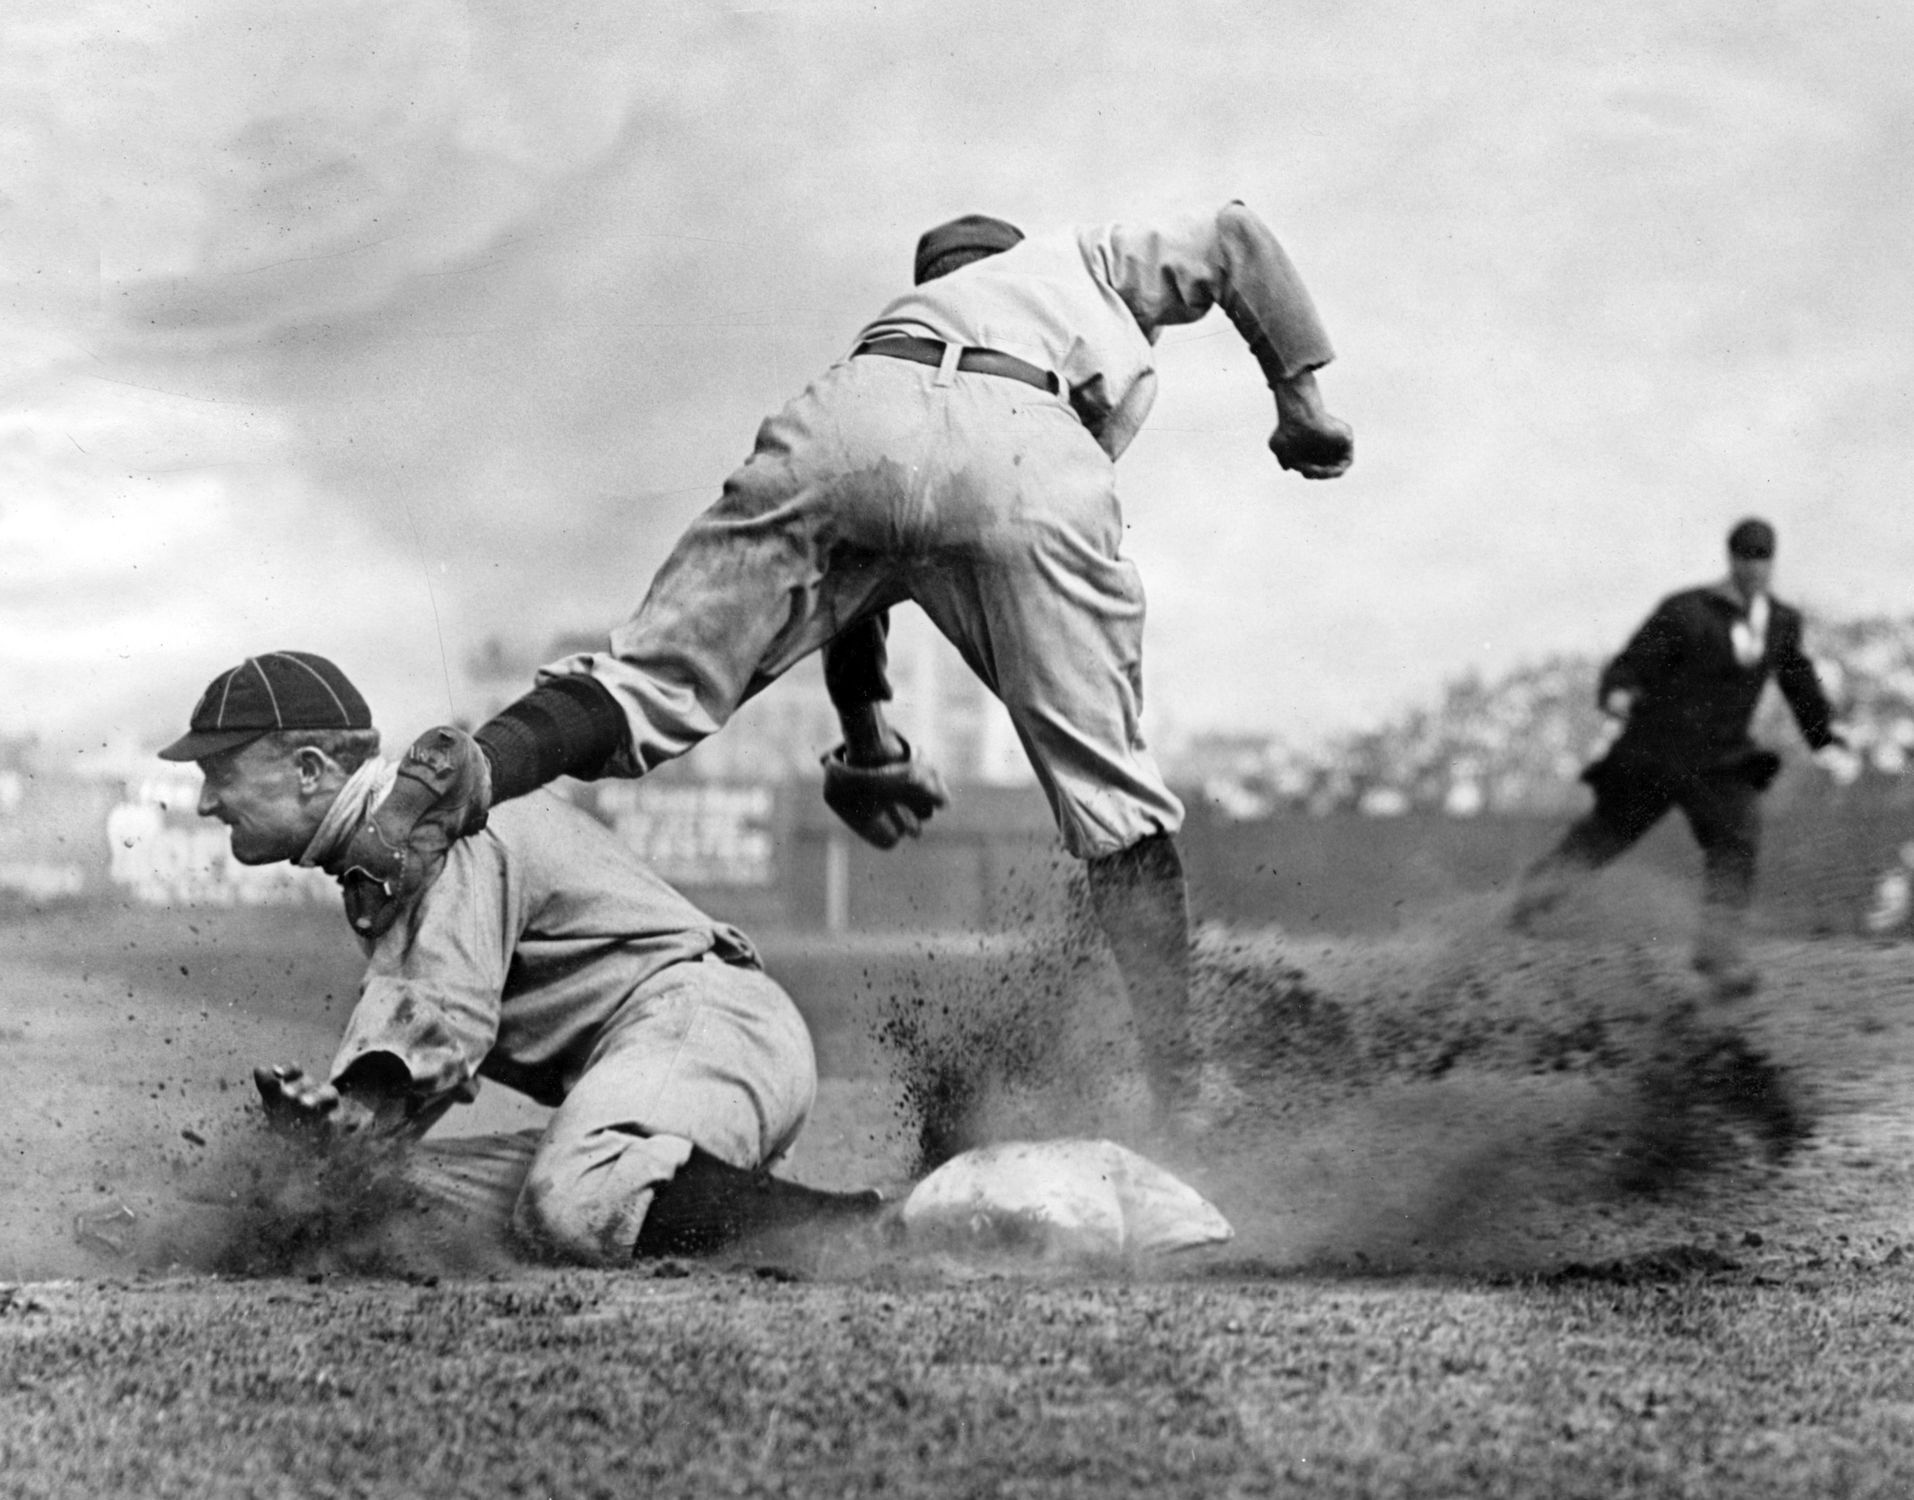 Charles Conlon's iconic photograph of Ty Cobb sliding into third base (NATIONAL BASEBALL HALL OF FAME LIBRARY)